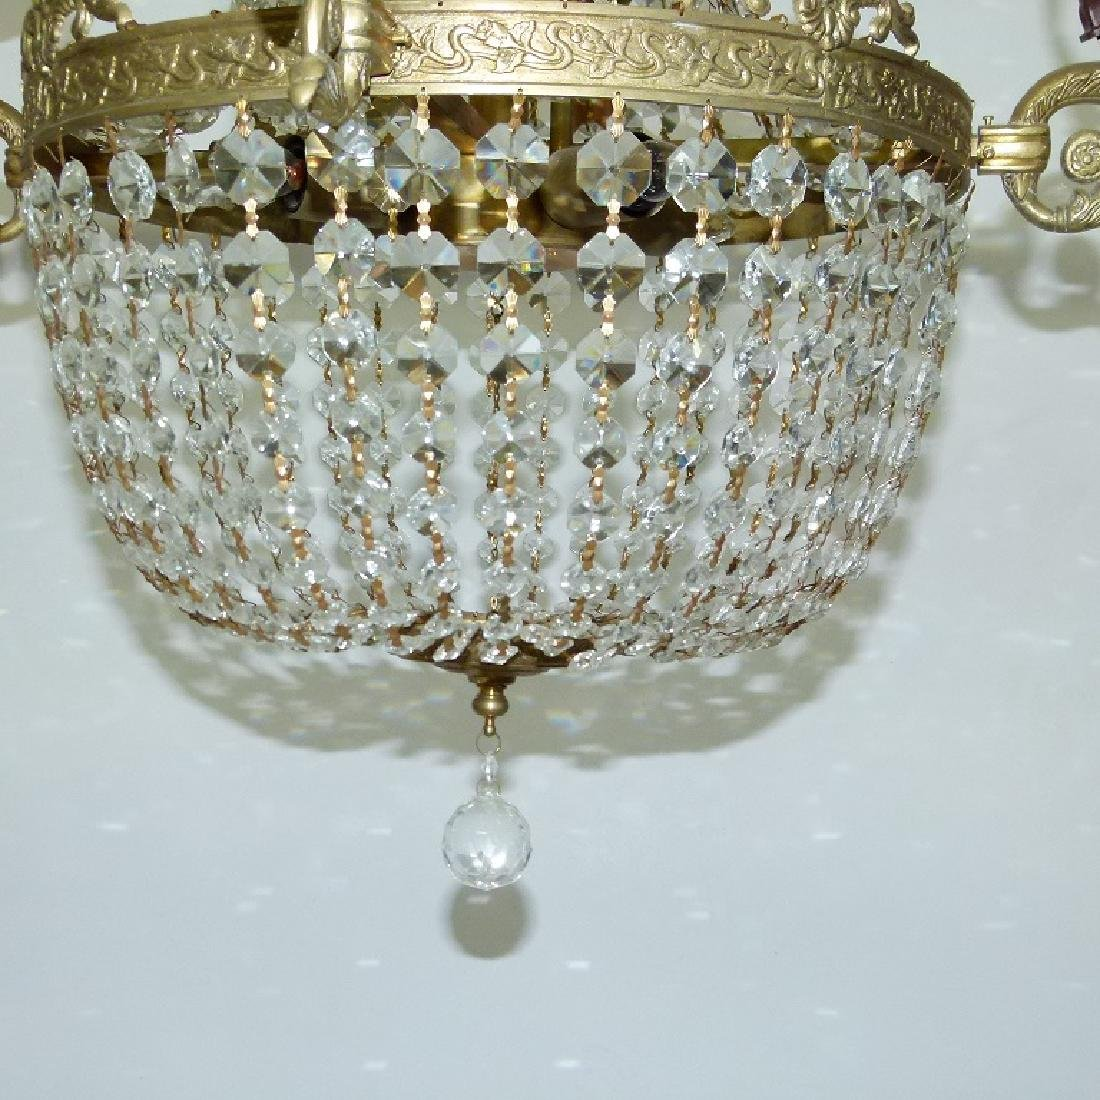 FRENCH BRONZE/CRYSTAL HANGING CHANDELIER C. 1920 - 4